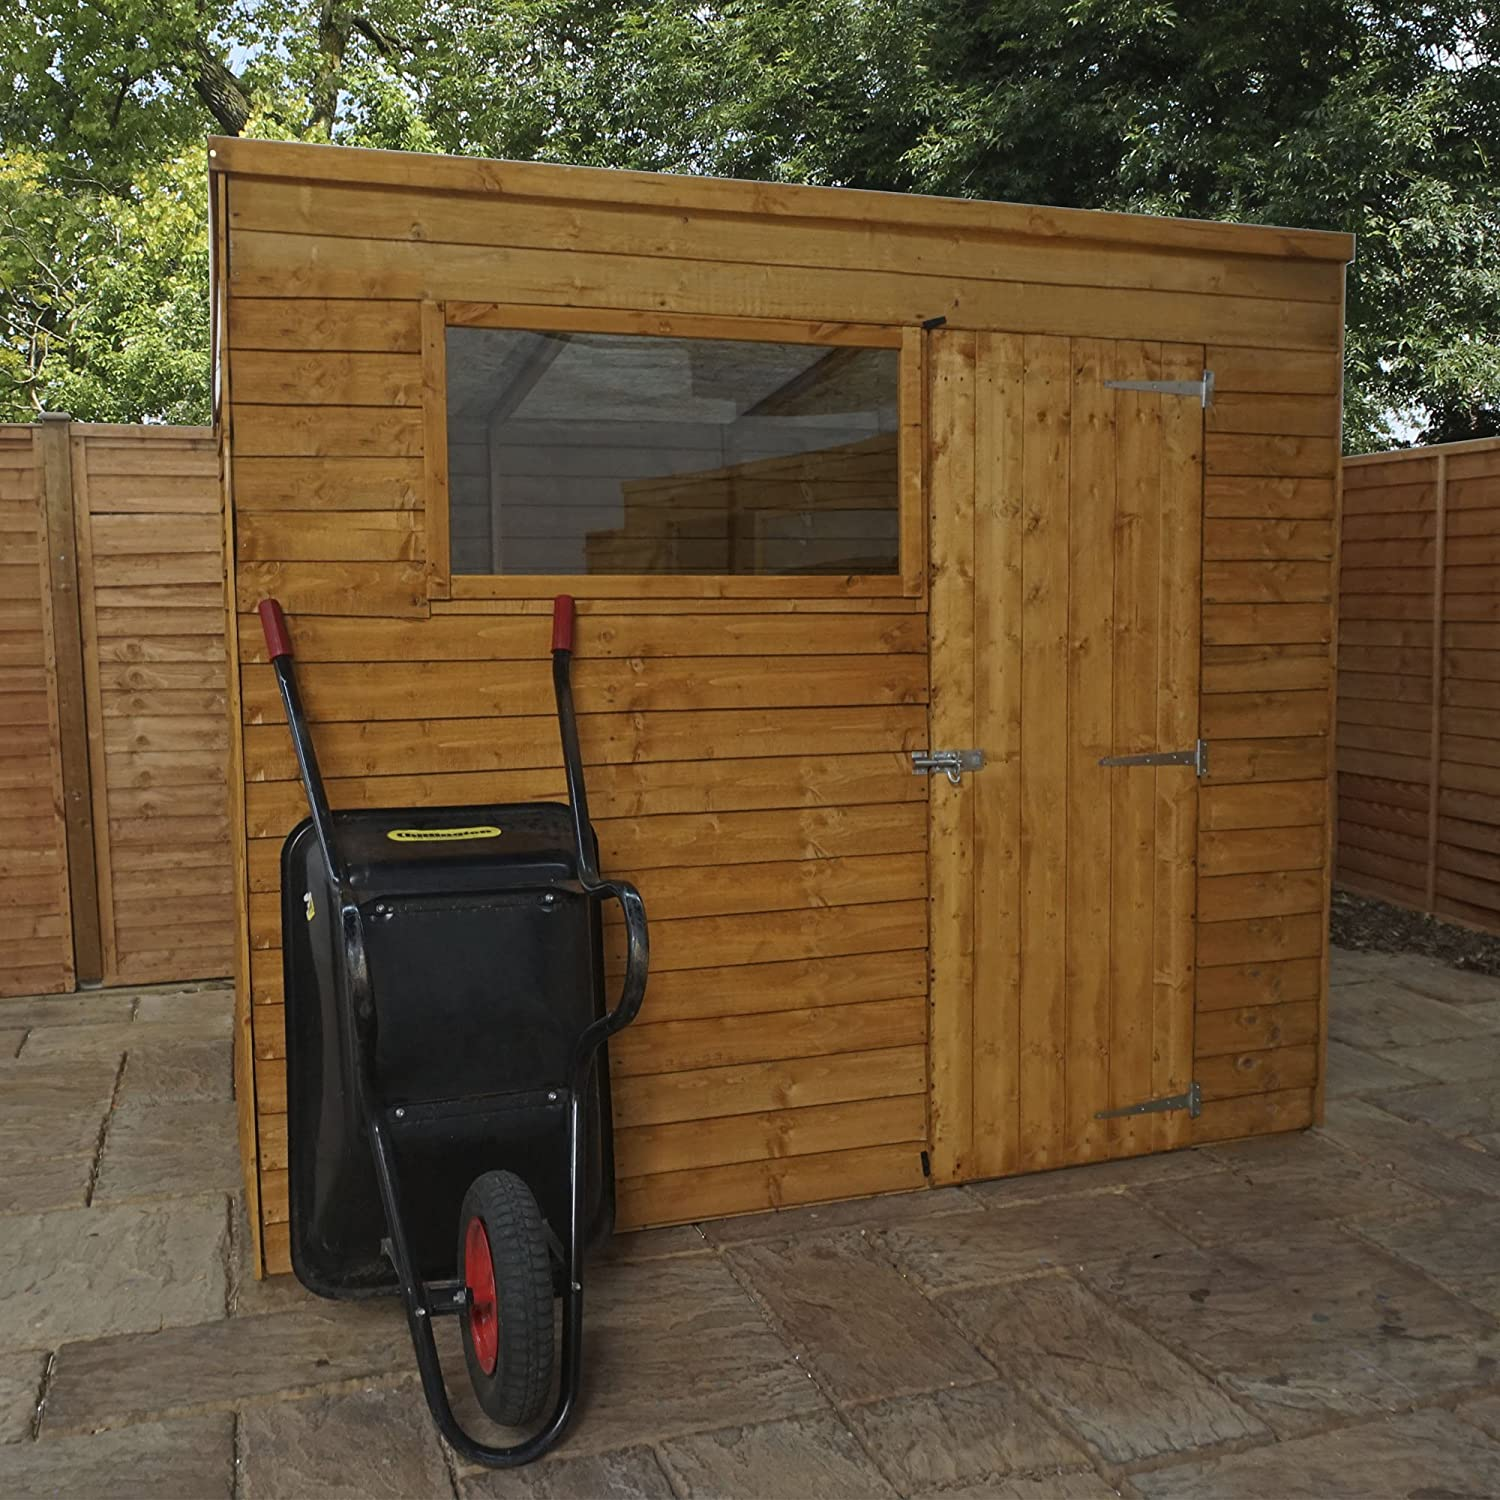 free shed reduction express product uk osb solid garden sheds wooden sat delivery x overlap windowless flash apex escape floor with door single value